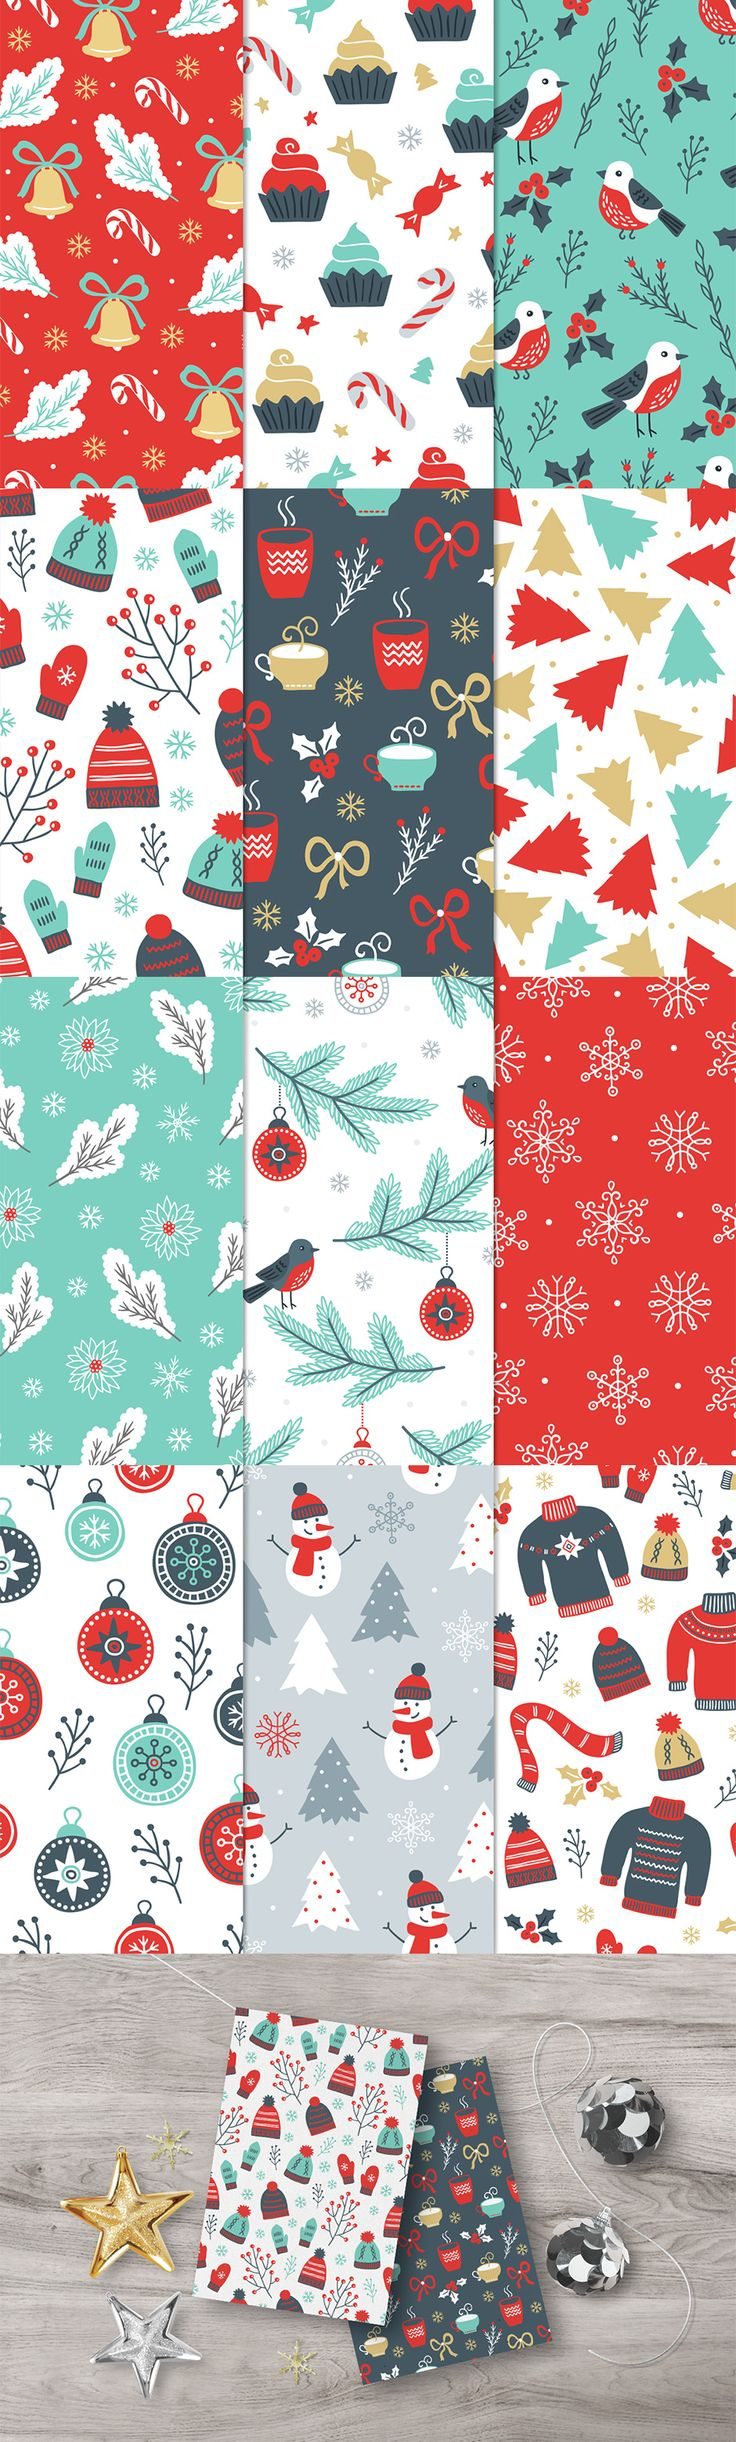 12 Christmas Seamless Patterns - https://www.designcuts.com/product/12-christmas-seamless-patterns/